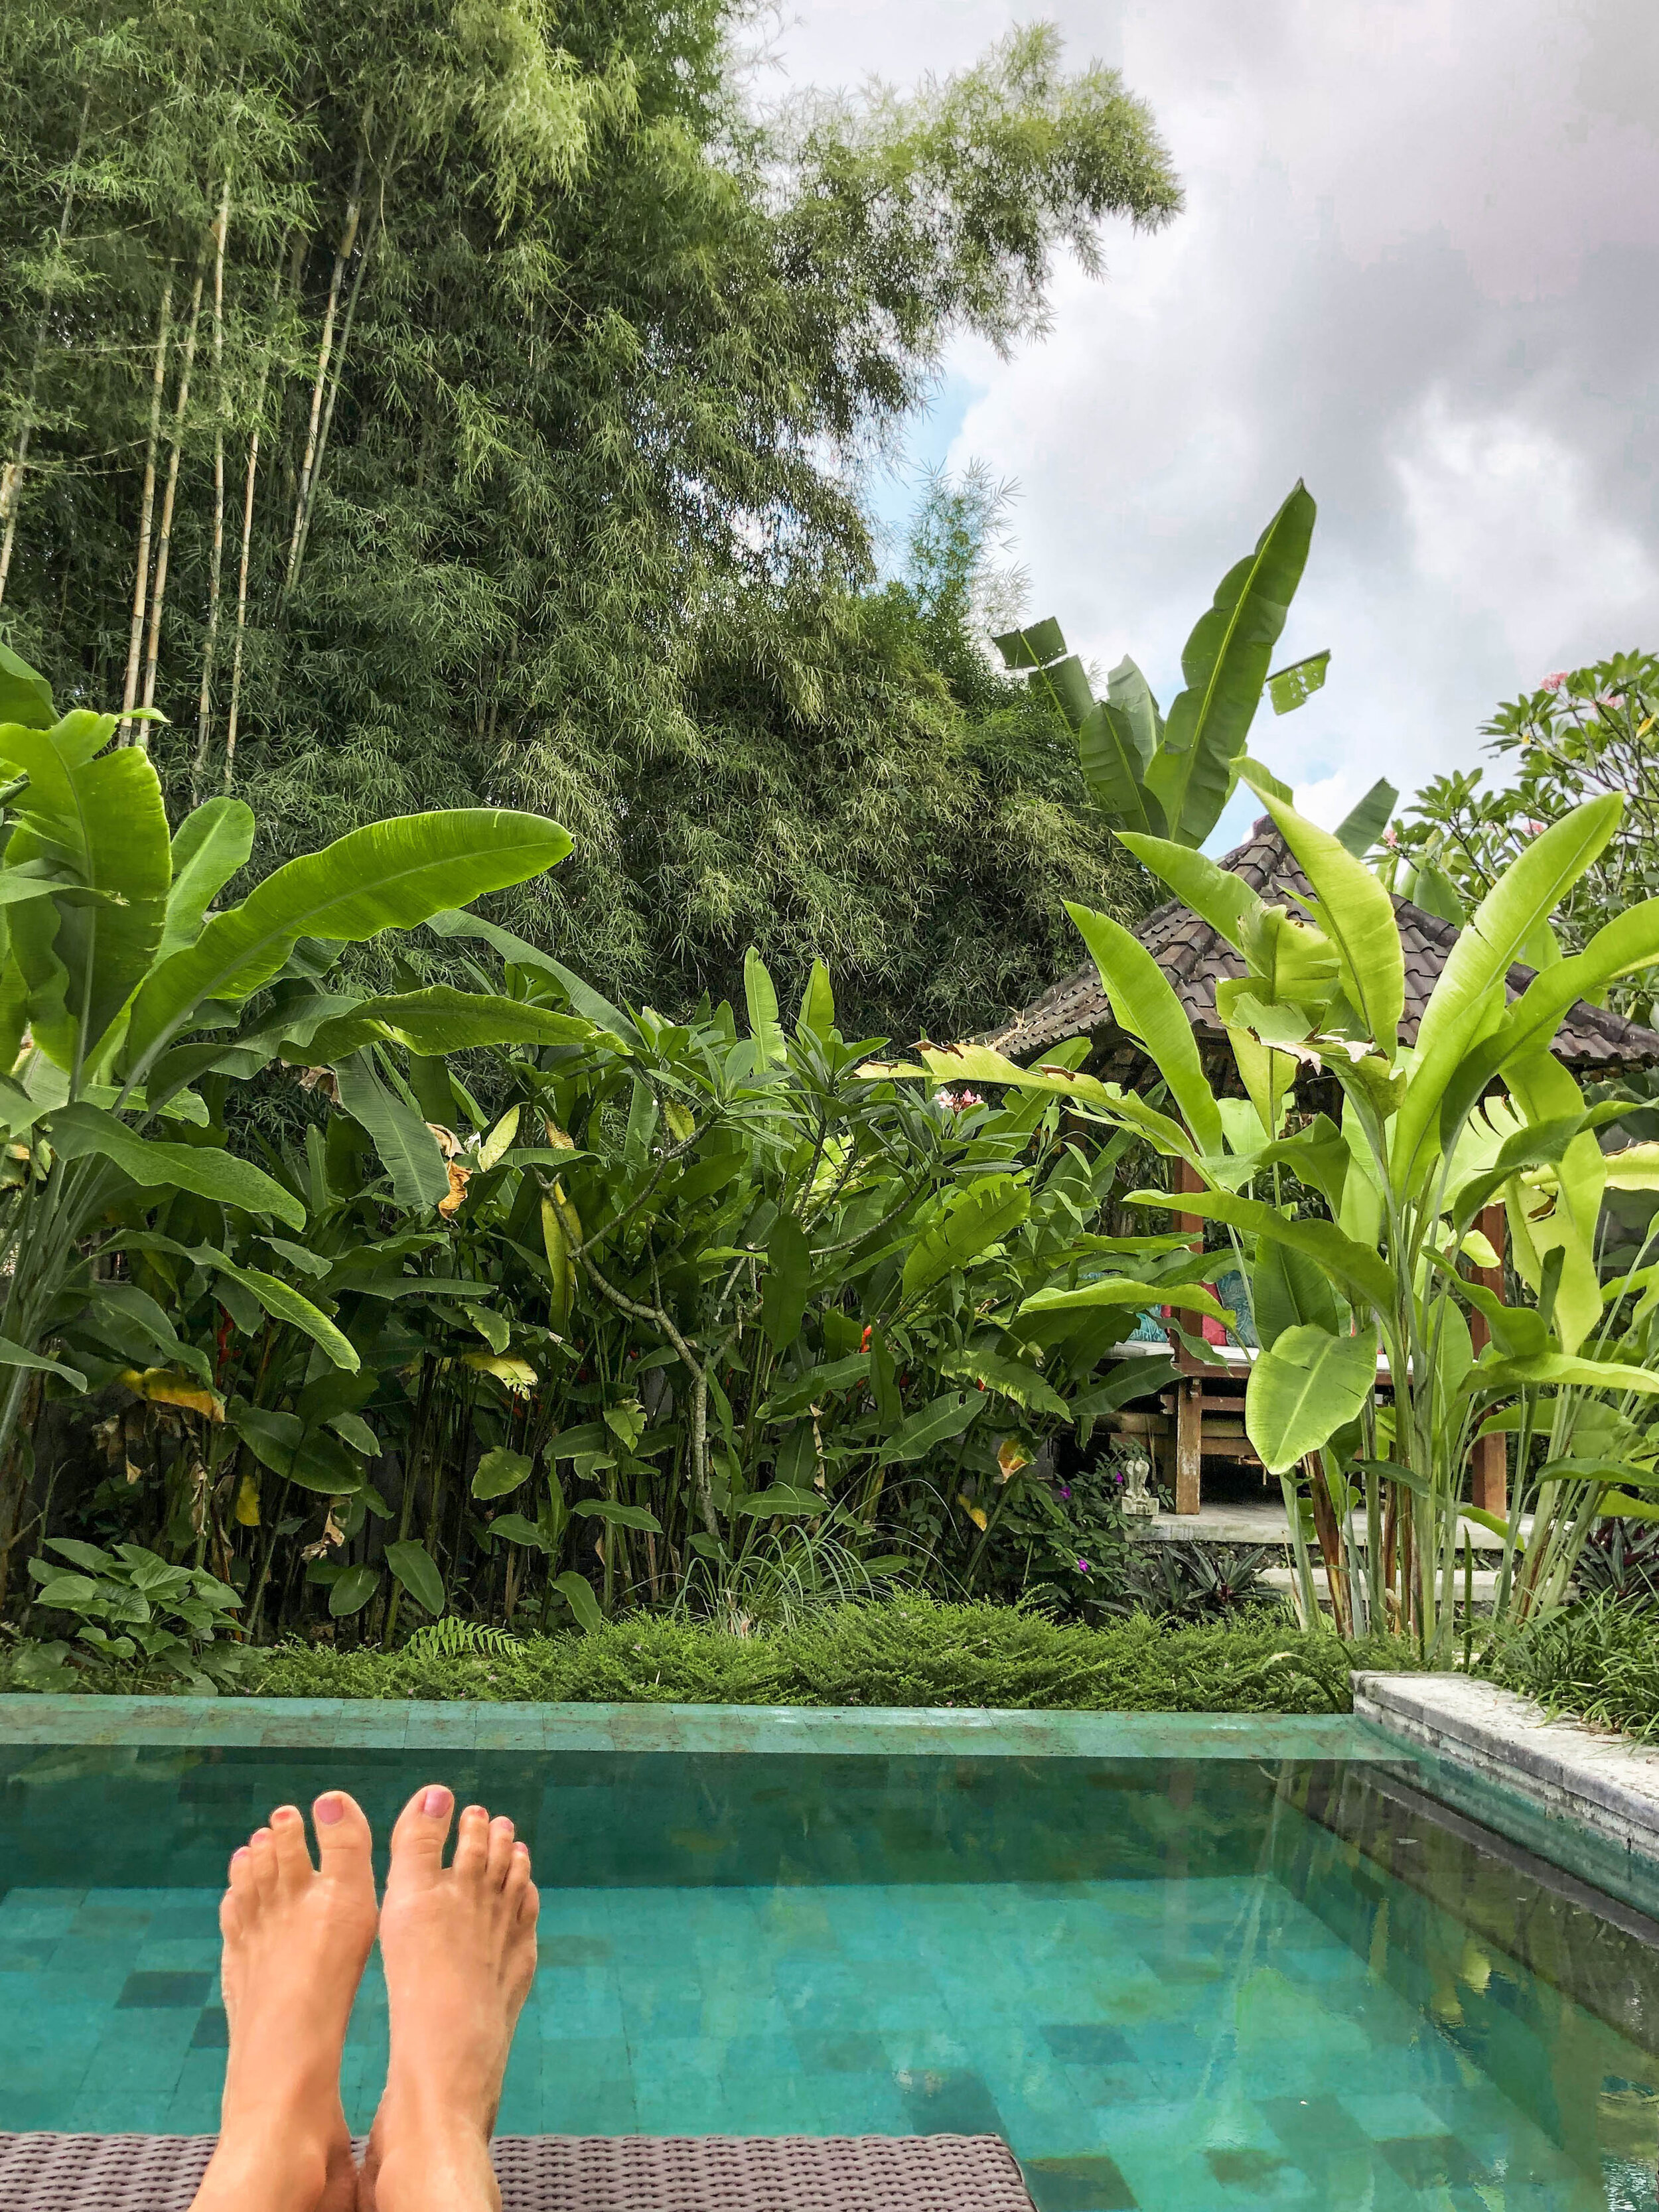 This was the villa we stayed at in Ubud. The hosts were very accommodating & even made us a bfast every morning